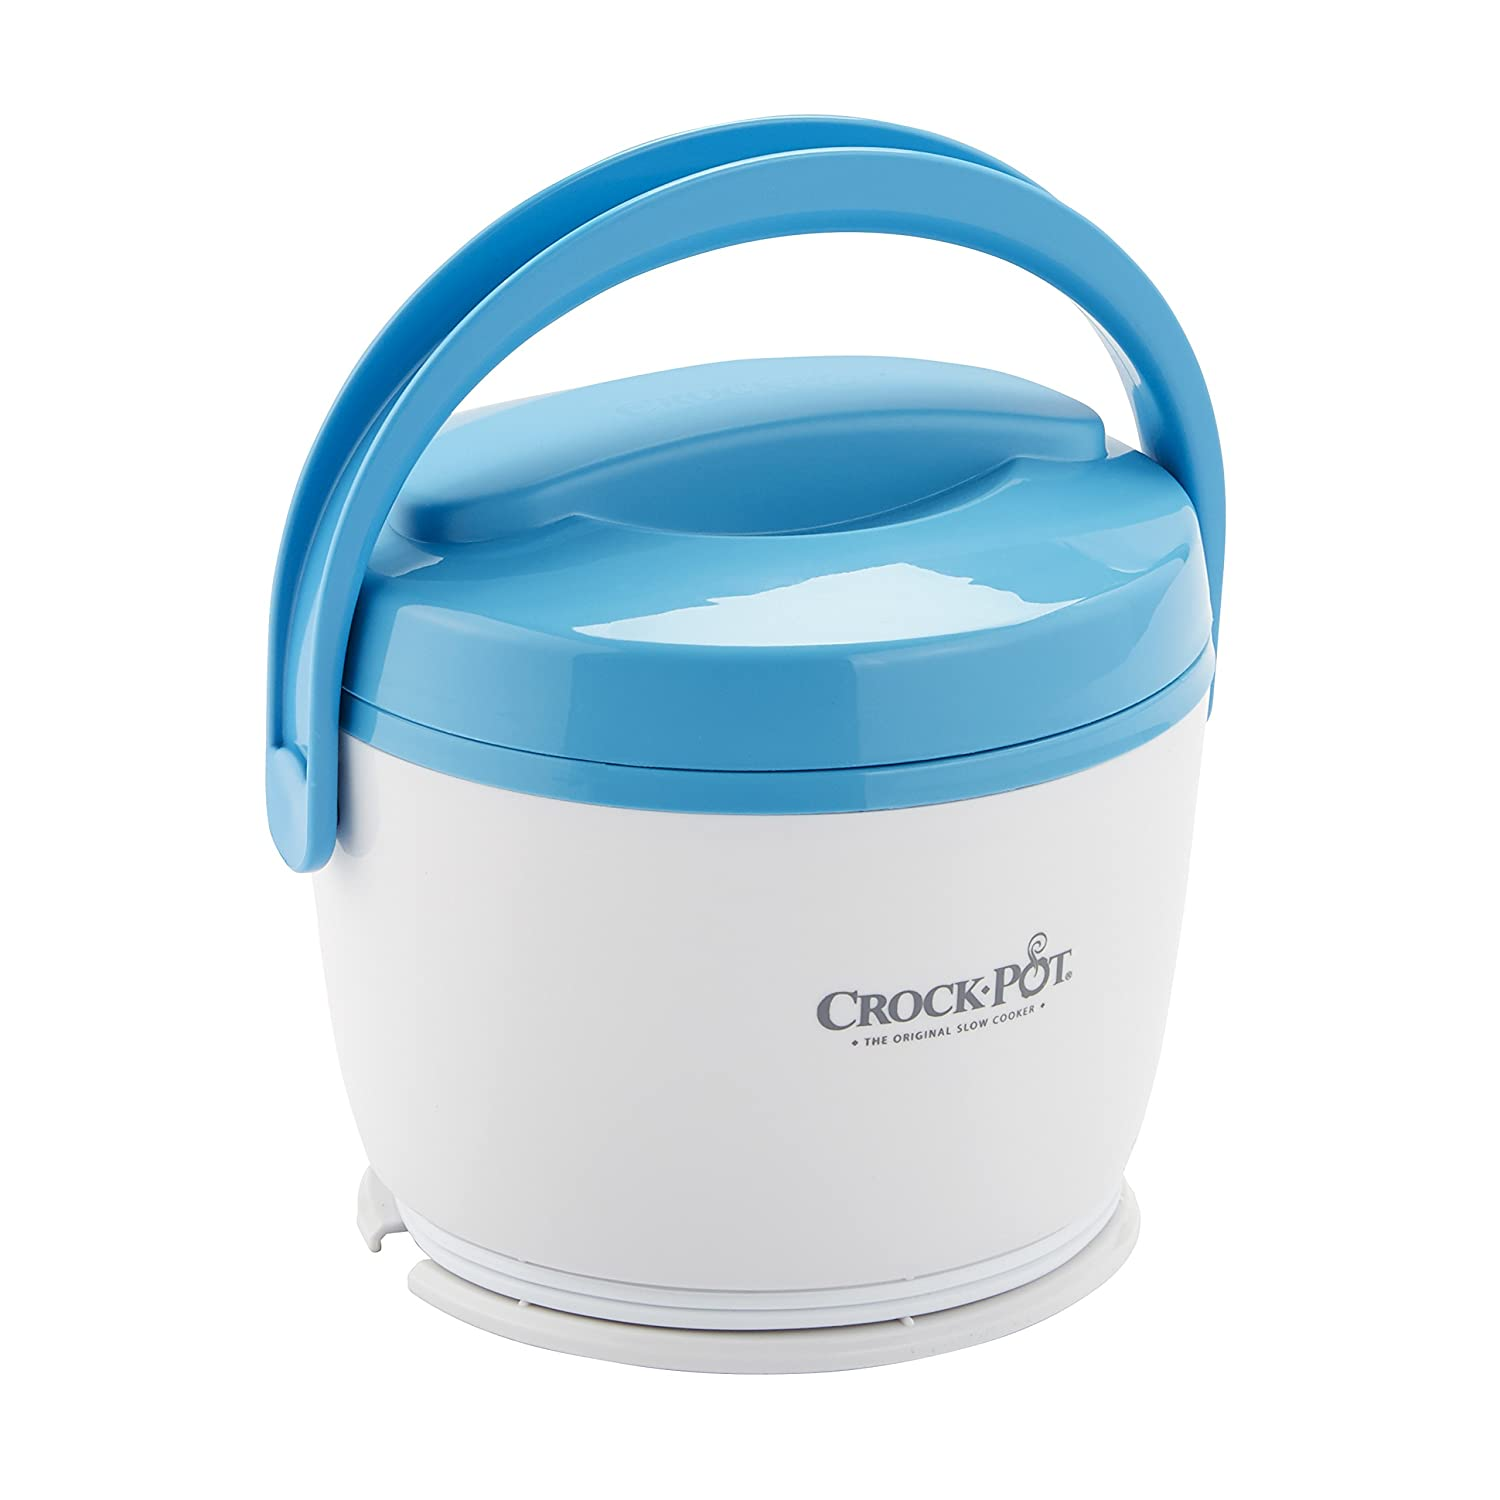 Crock-Pot Lunch Crock Food Warmer, Blue